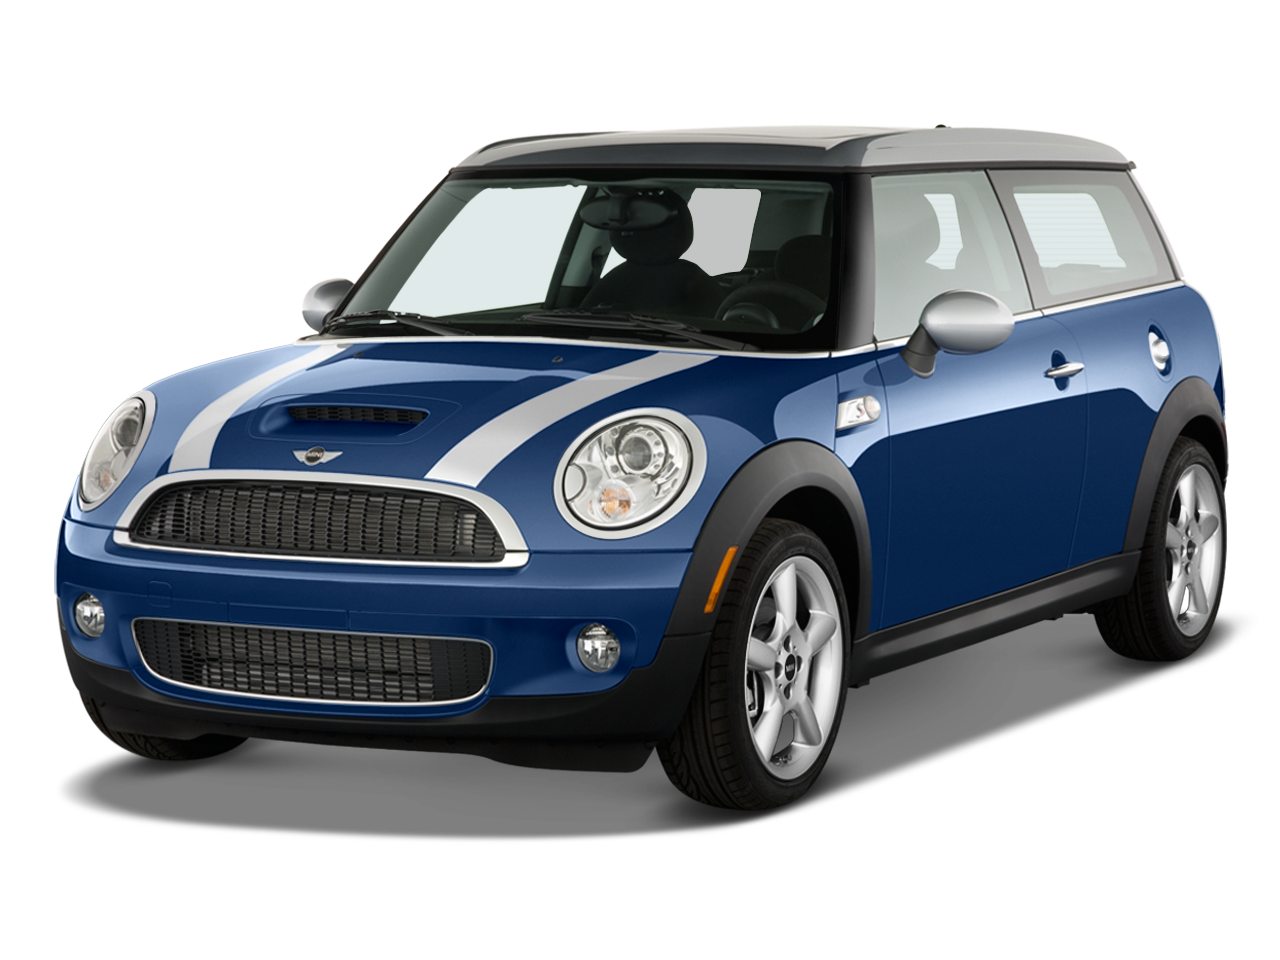 cooper clubman mini 2009 2008 door gmod coupe front classic addons cracked bmc angular specs exterior motortrend cars collectible 1971